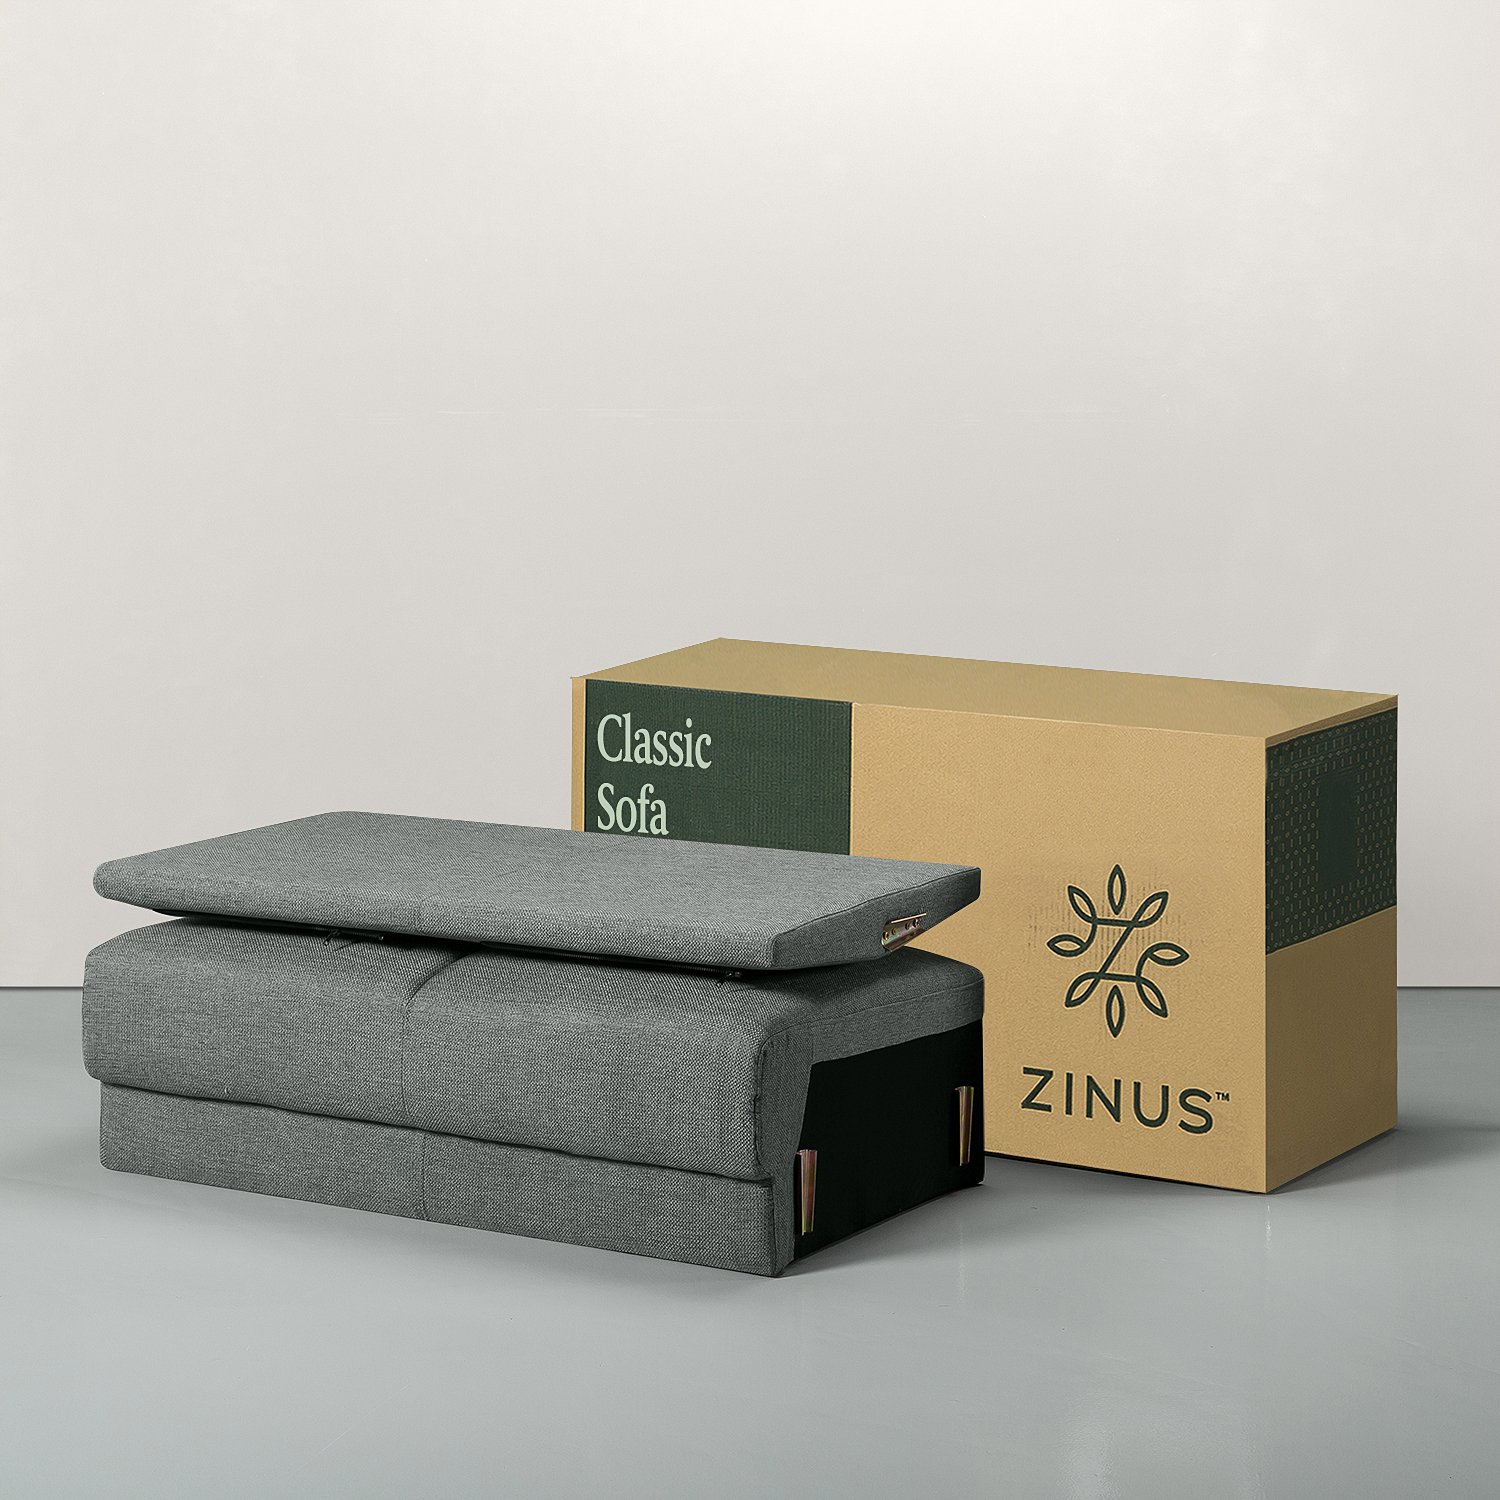 Zinus Classic Upholstered Sofa Couch/Loveseat